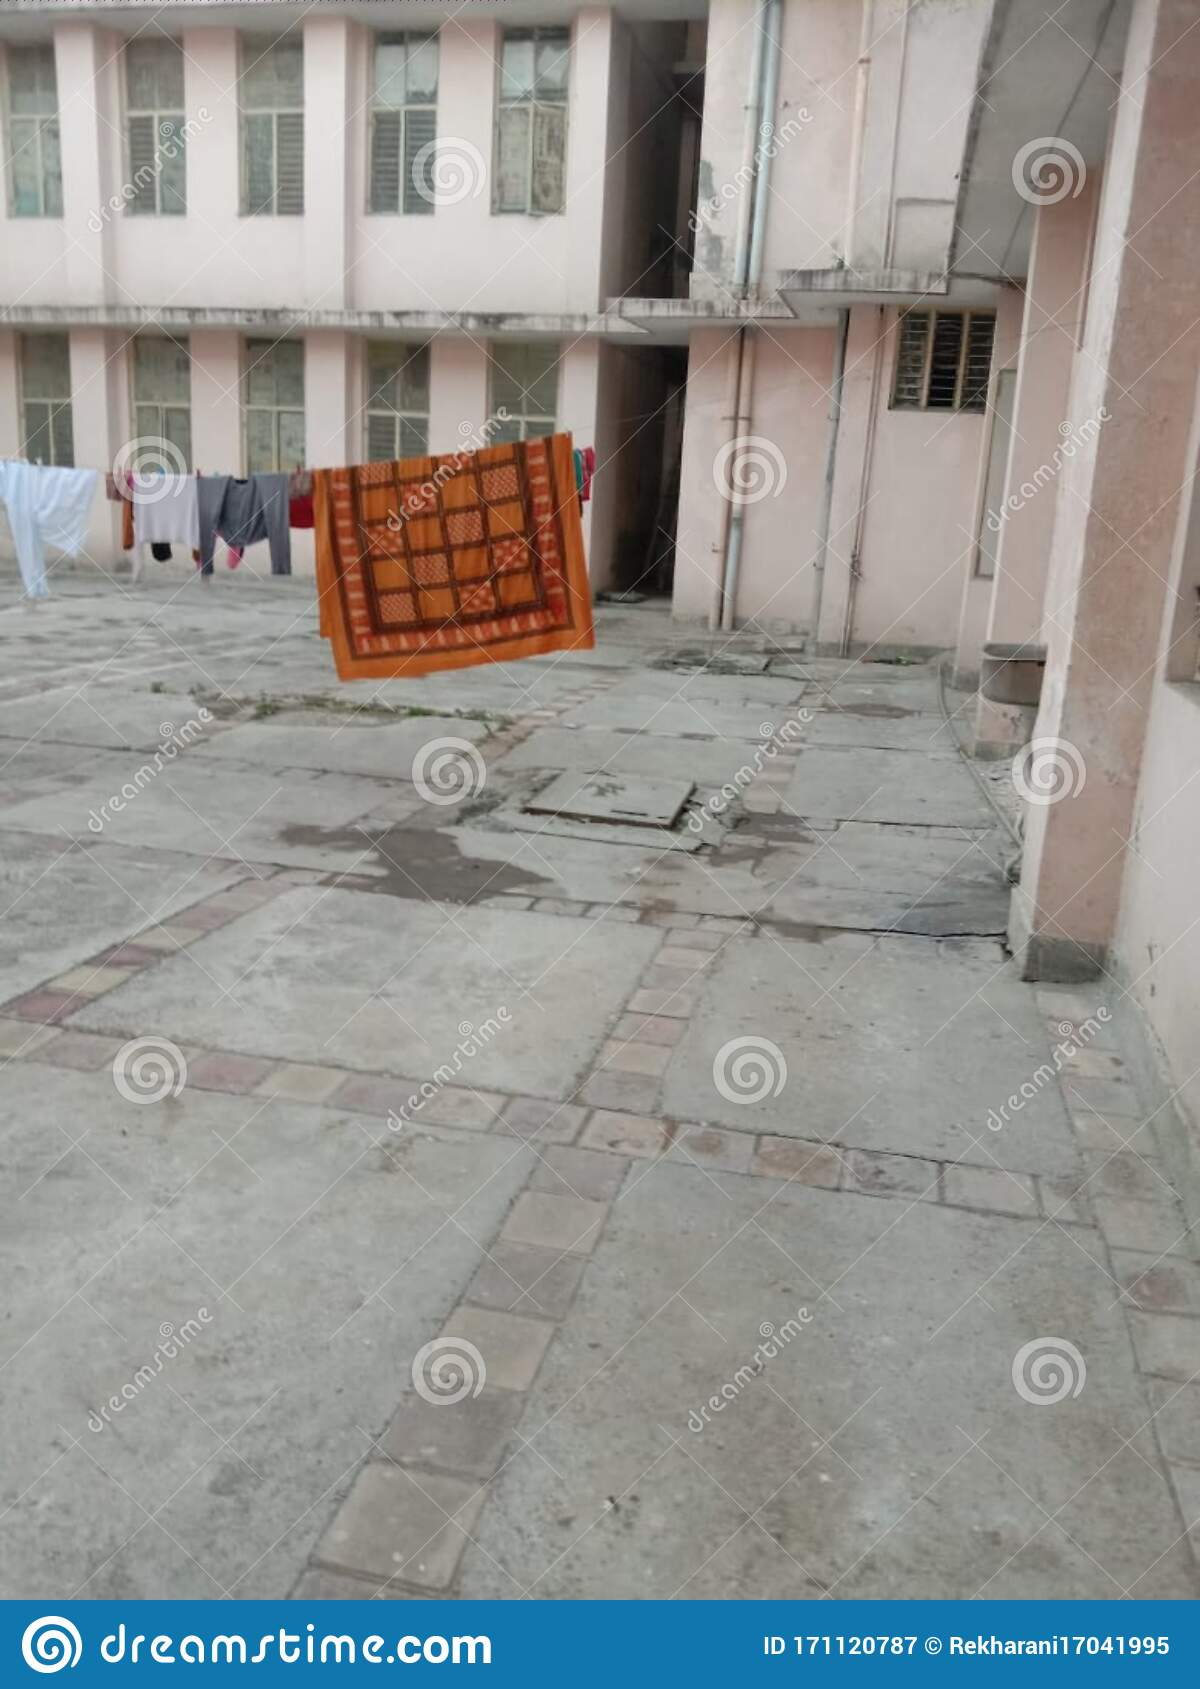 Tie A Rope Outside The Building And Dry The Clothes, This Picture Is From  Meerut Stock Image - Image of meerut, outside: 171120787